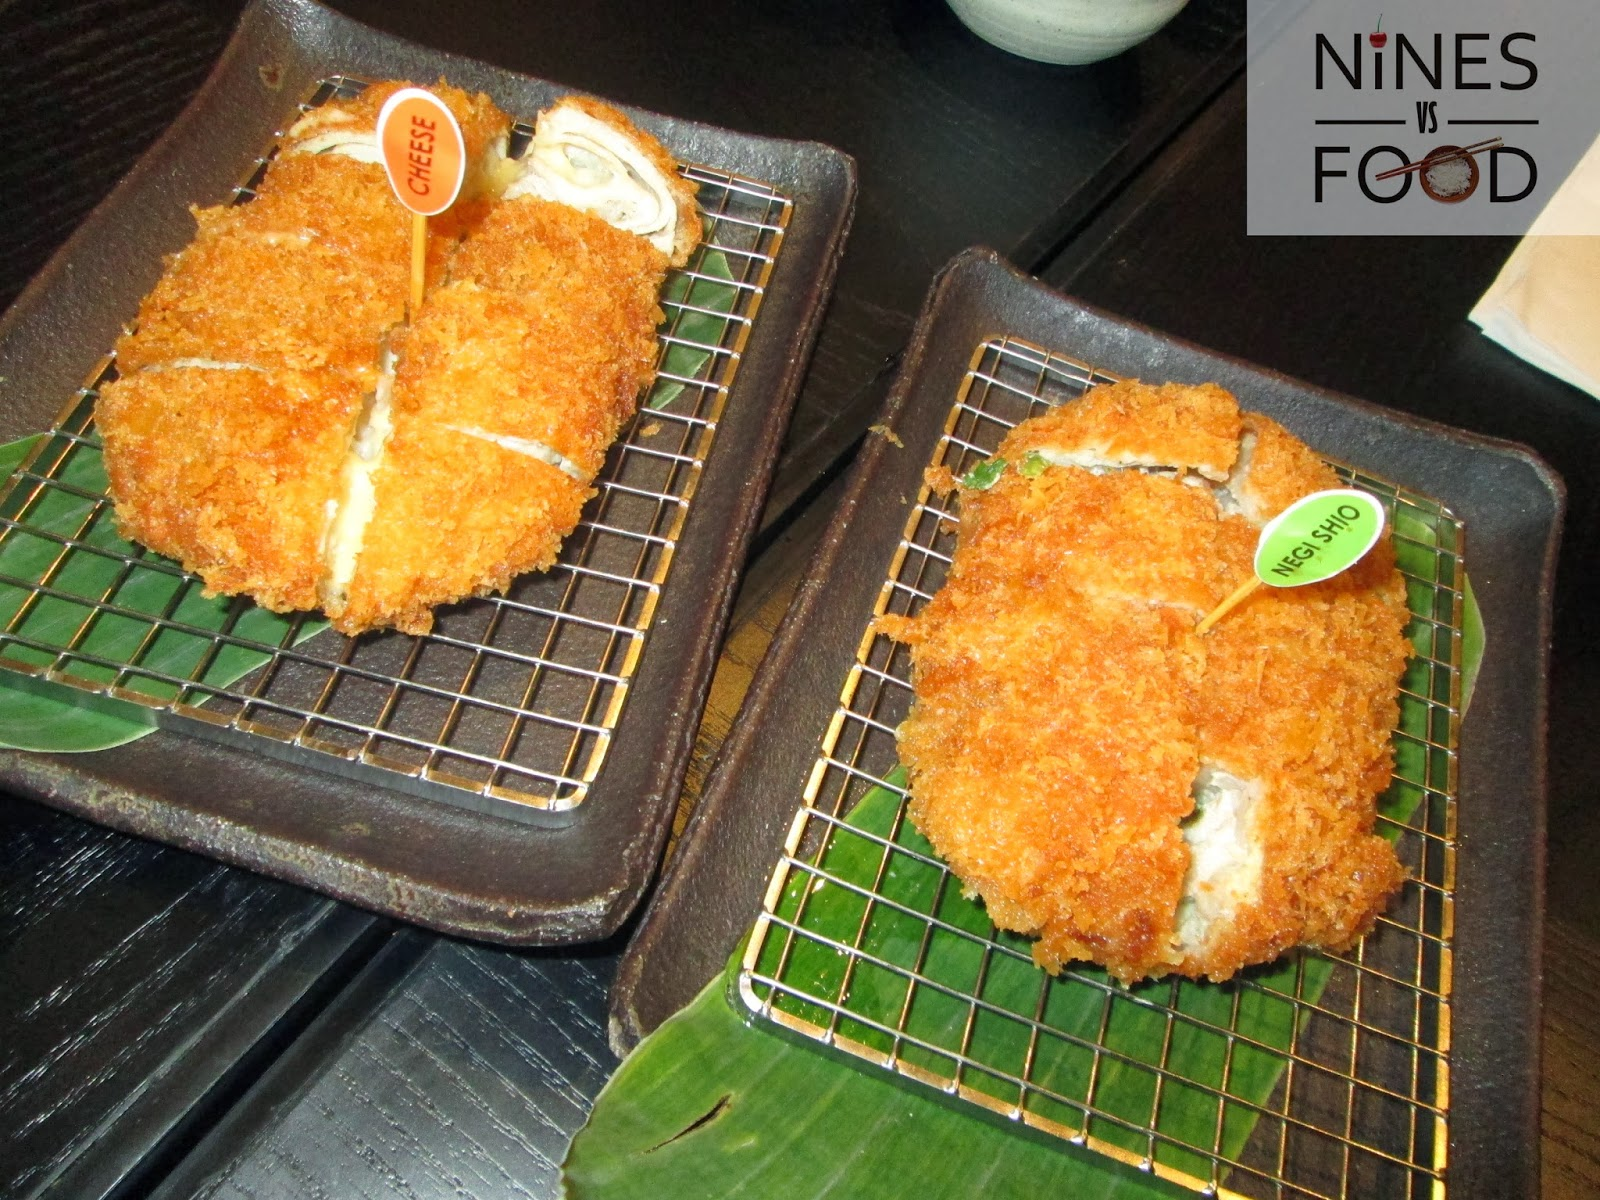 Nines vs. Food - Kimukatsu Manila Philippines-9.jpg